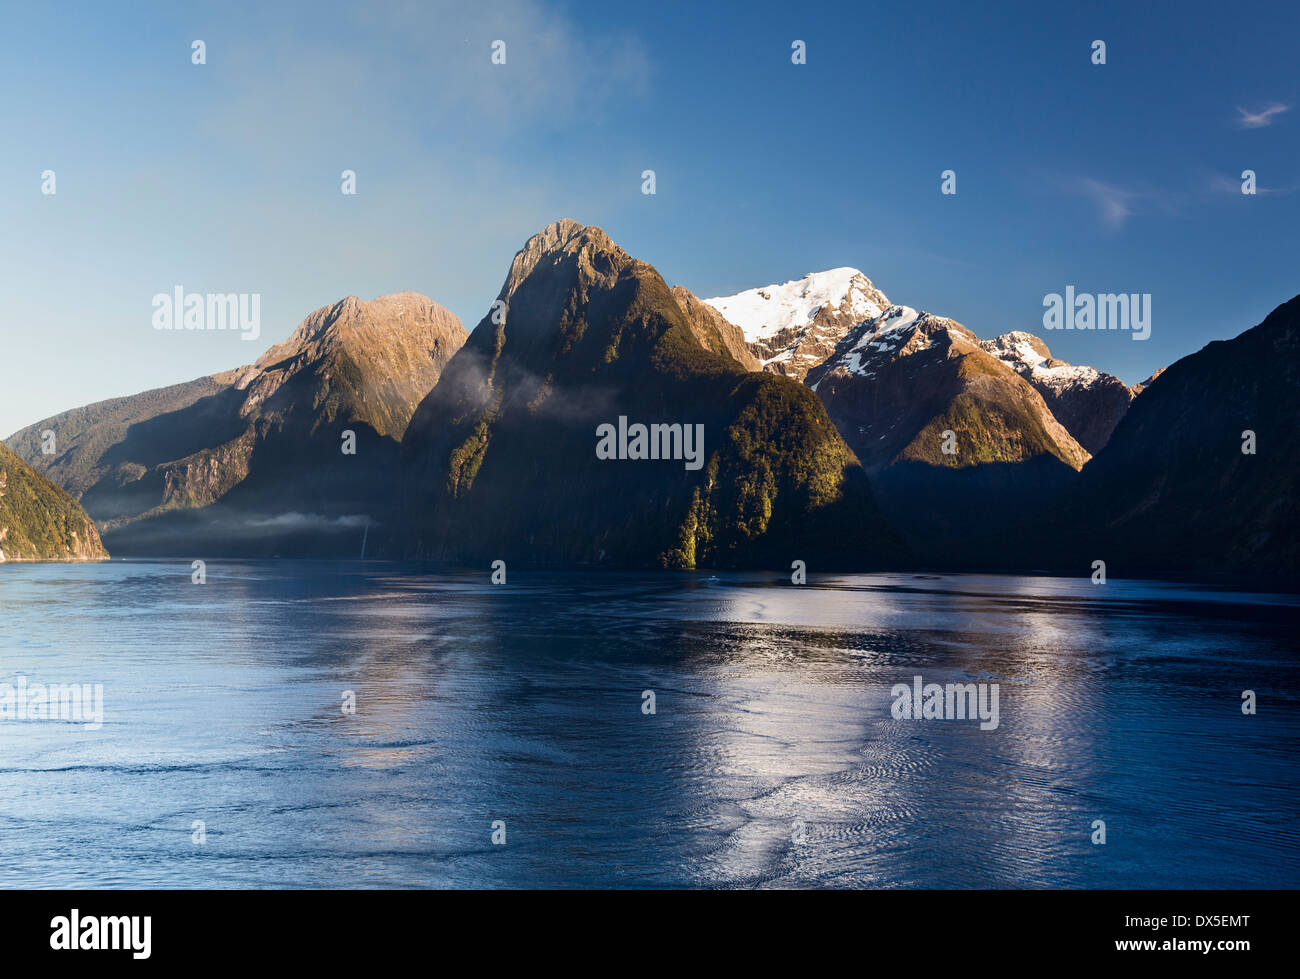 New Zealand - Milford Sound in the Fiordland National Park in the early morning - Stock Image